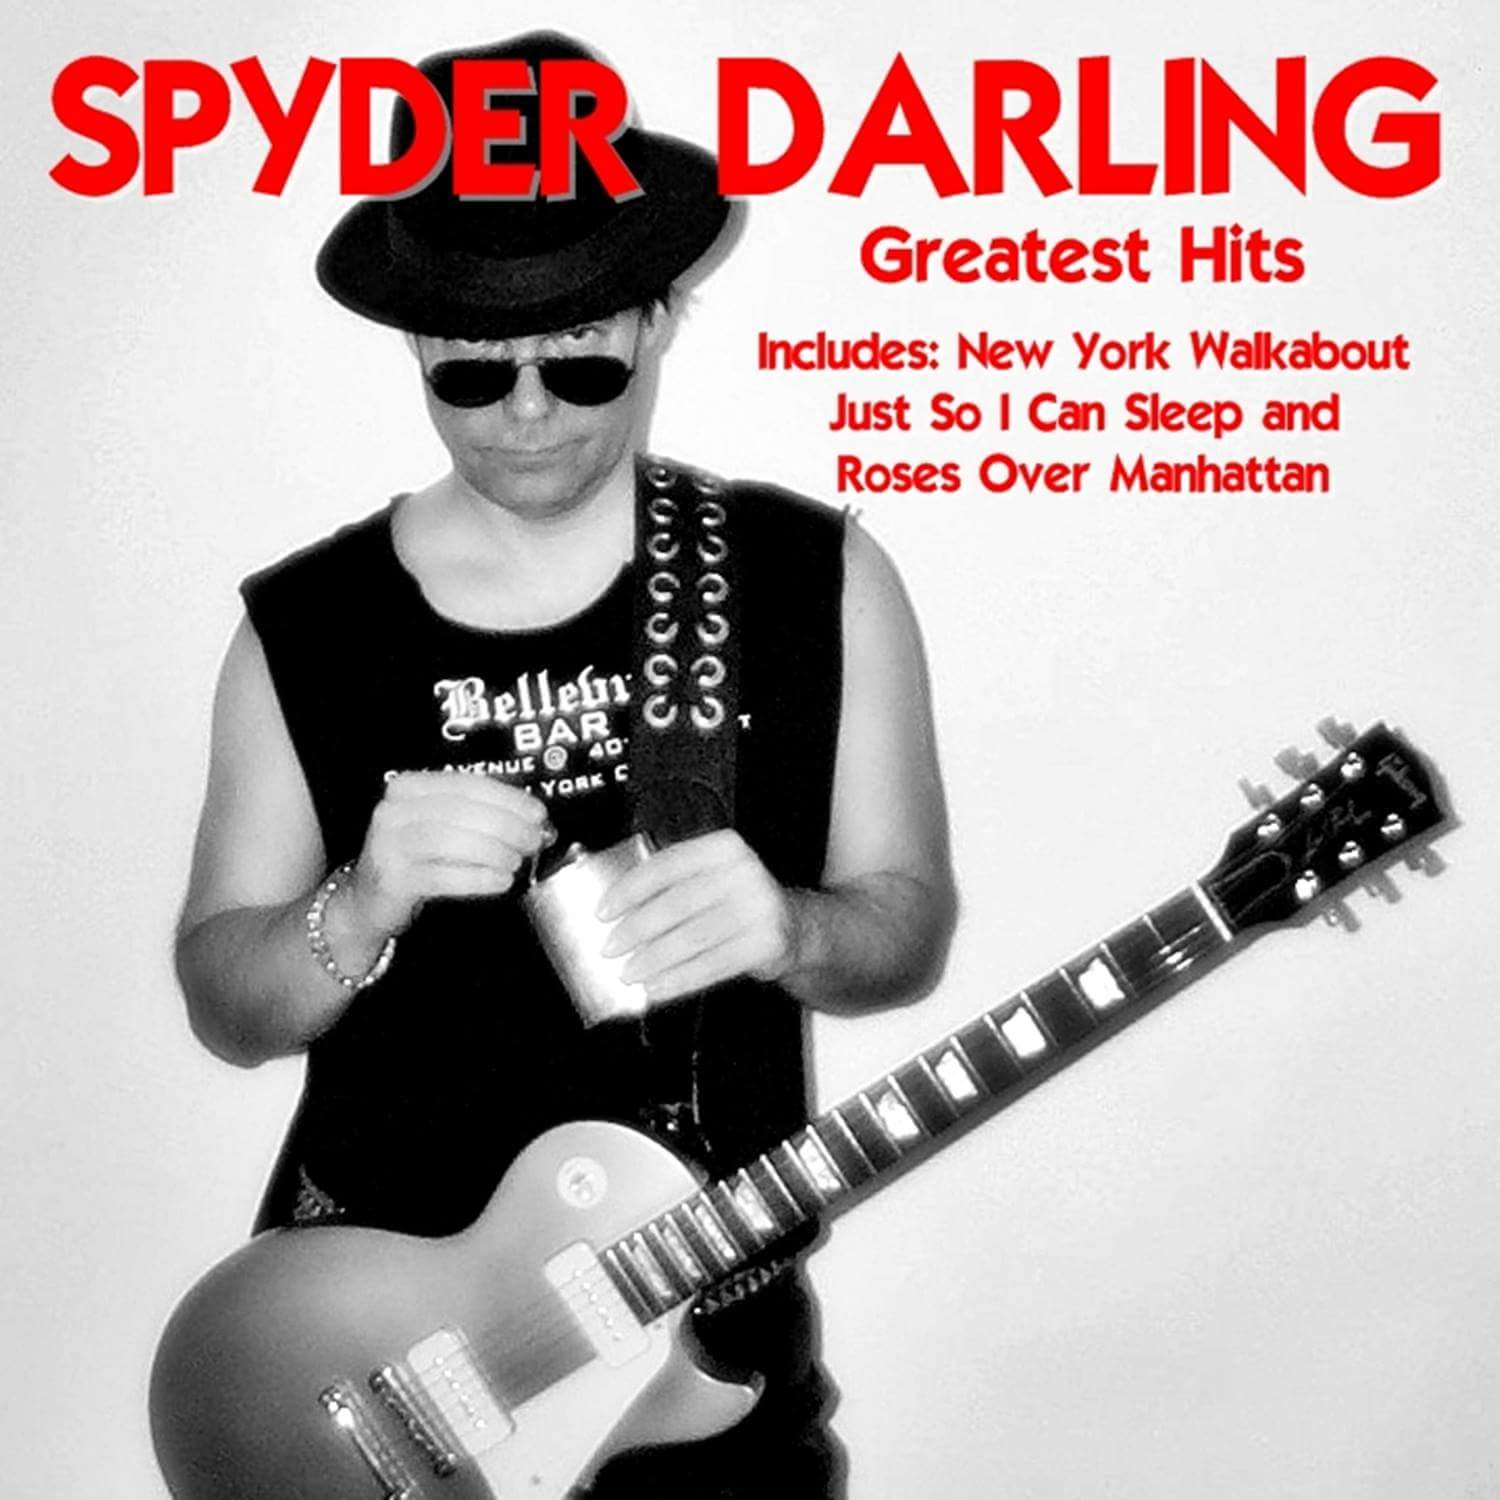 Spyder Darling - Greatest Hits cover